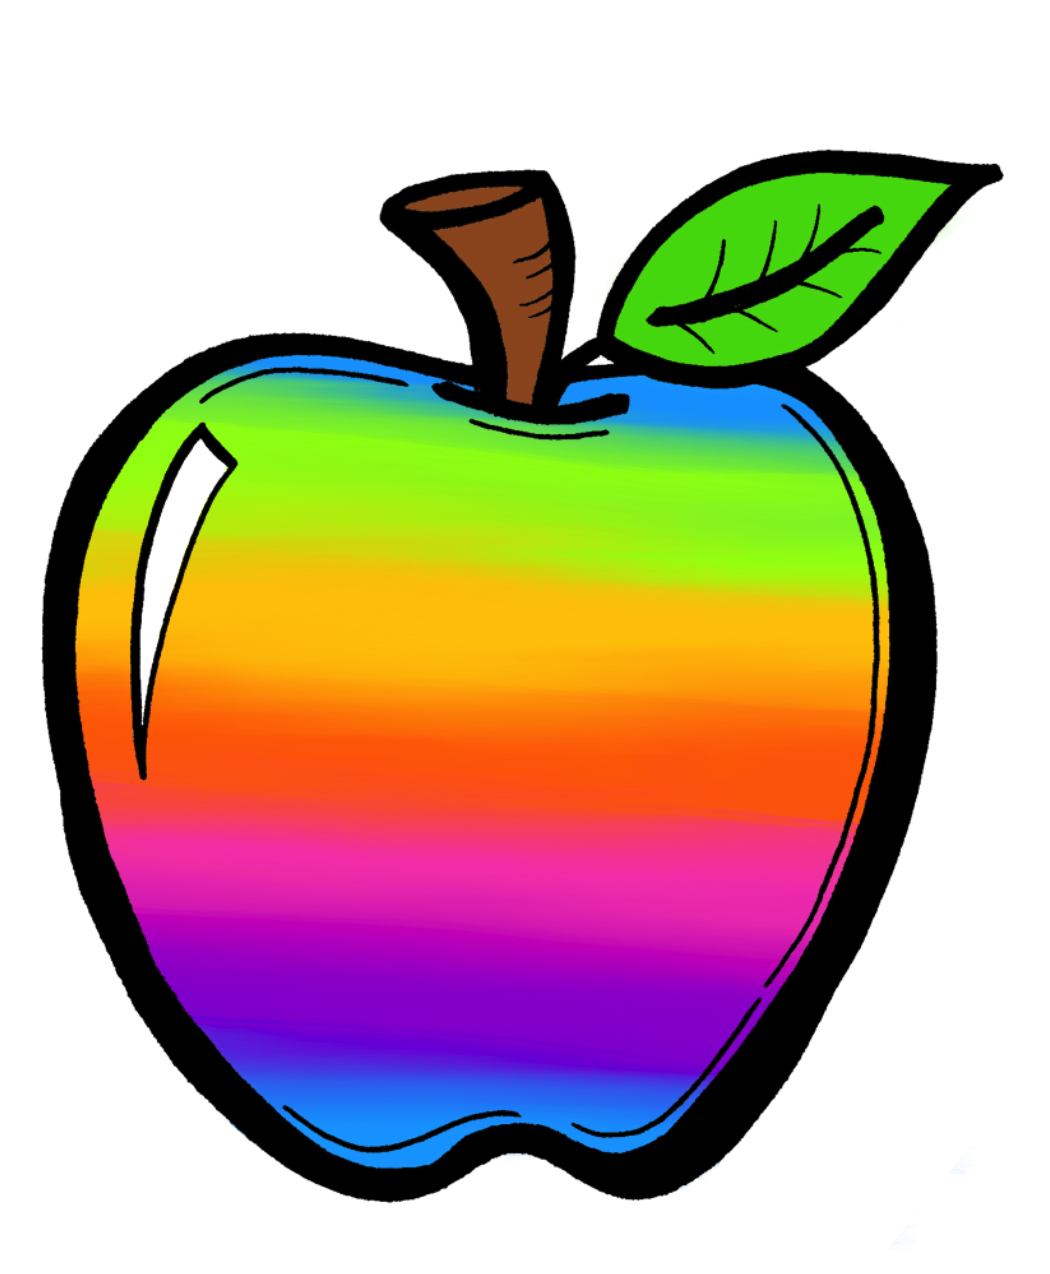 clip art for apple keynote - photo #22